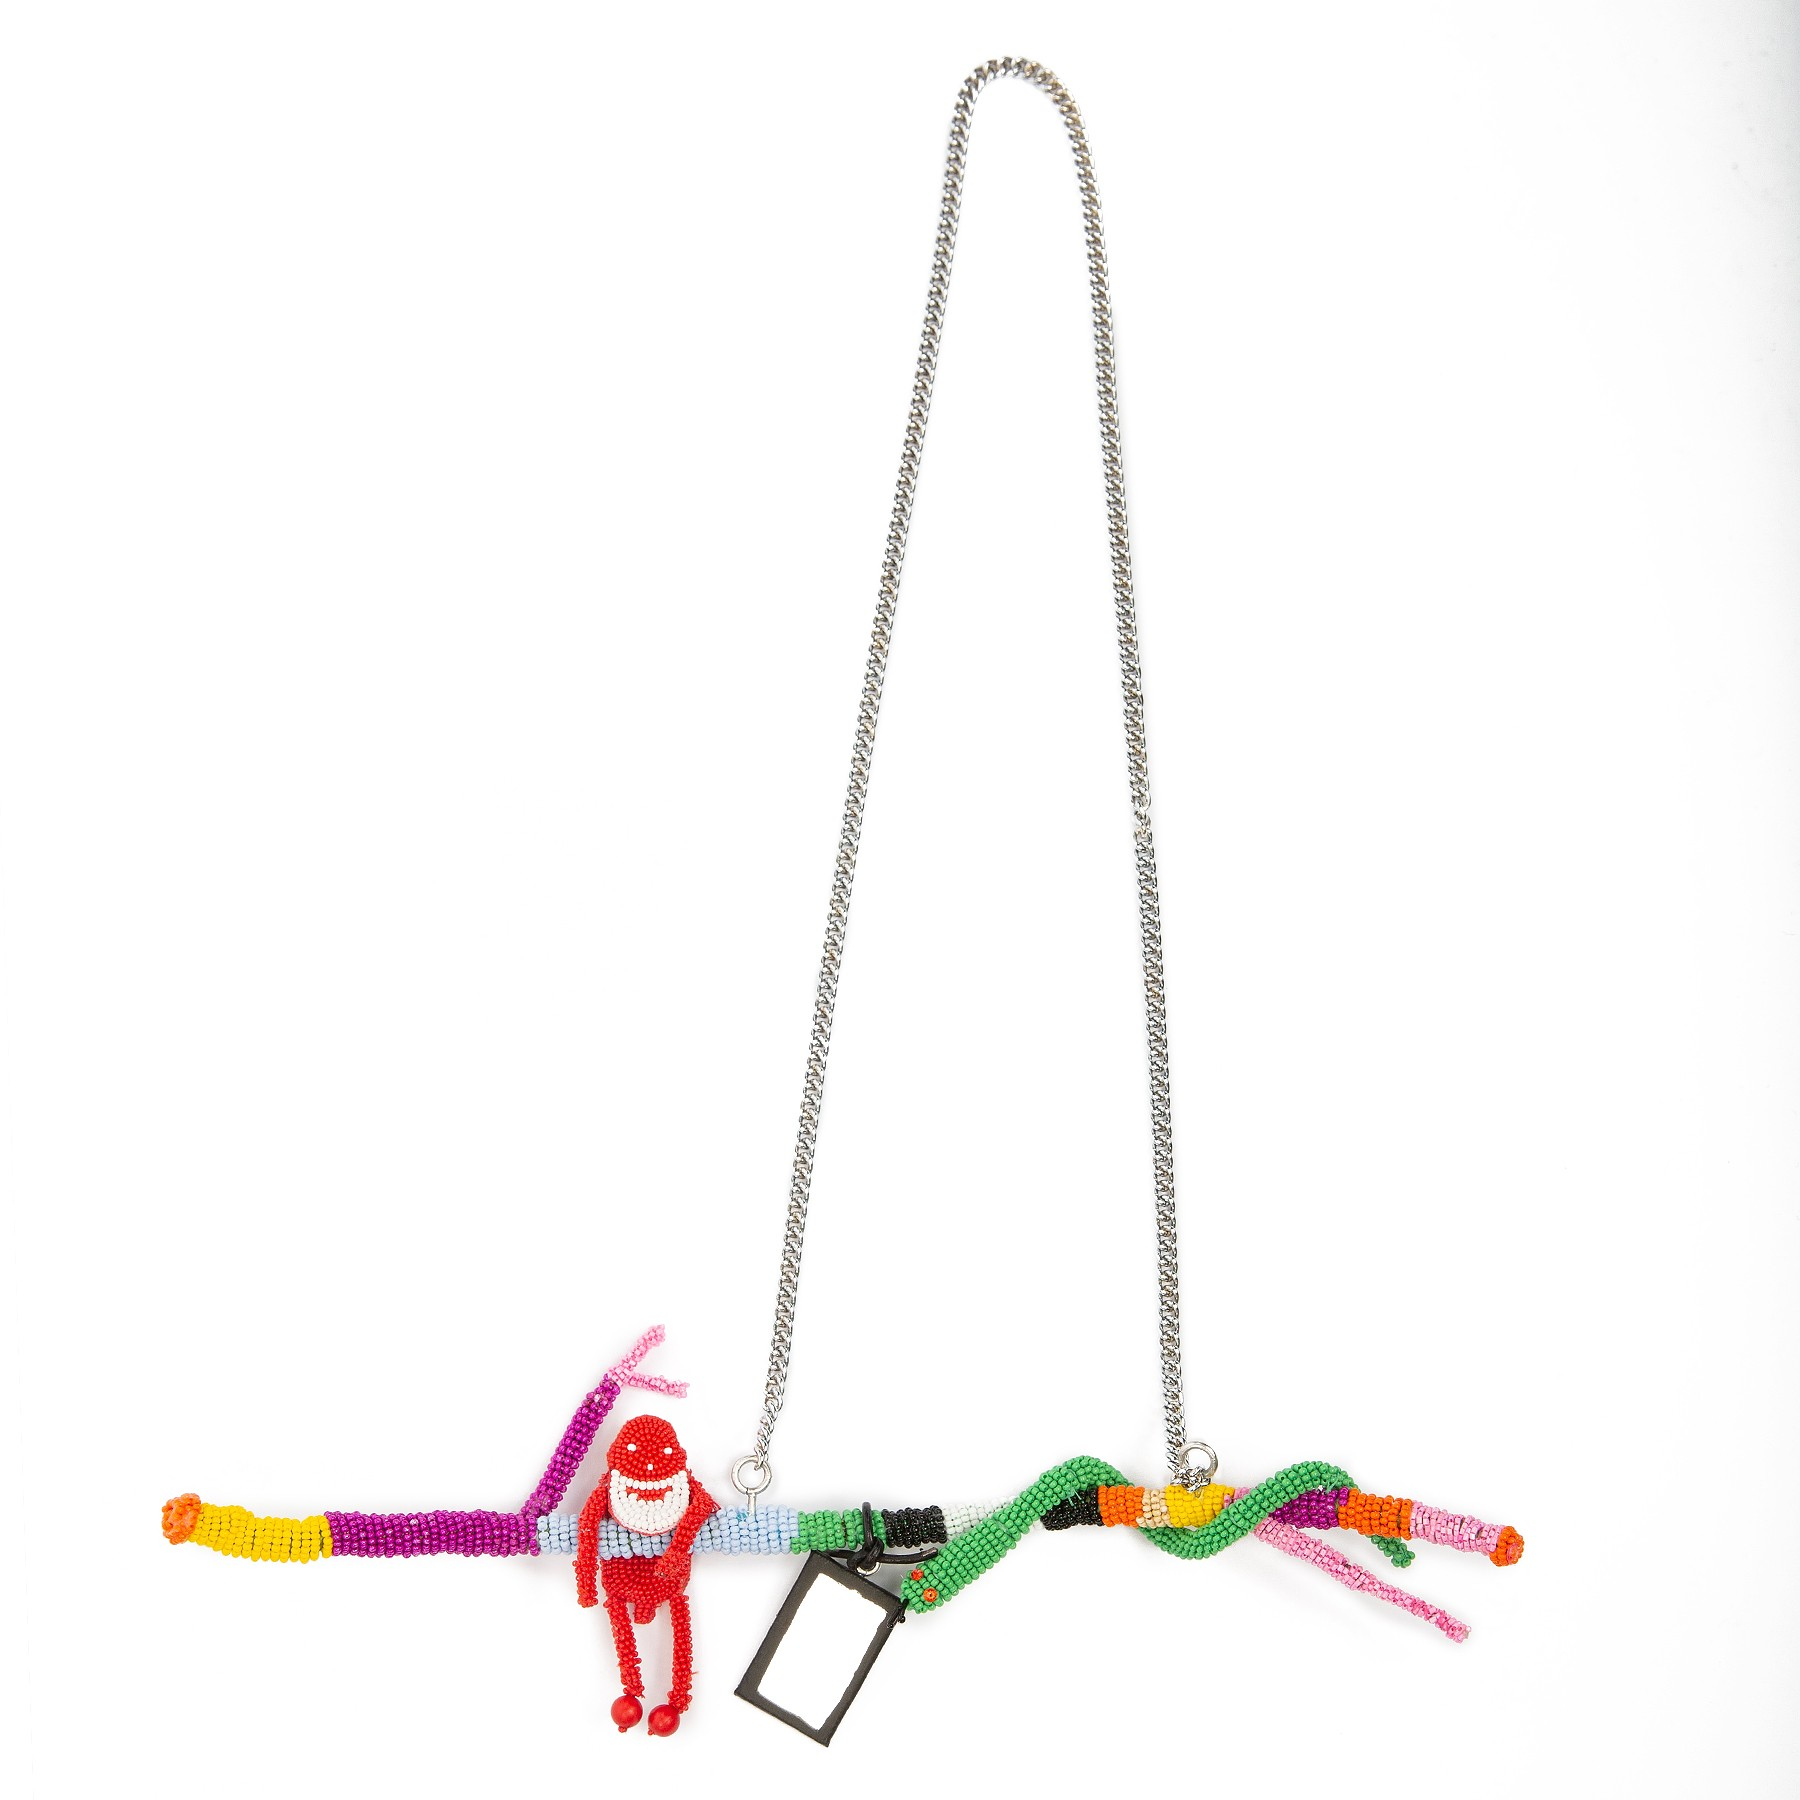 WALTER VAN BEIRENDONCK - WALTER VAN BEIRENDONCK PARADISE NECKLACE